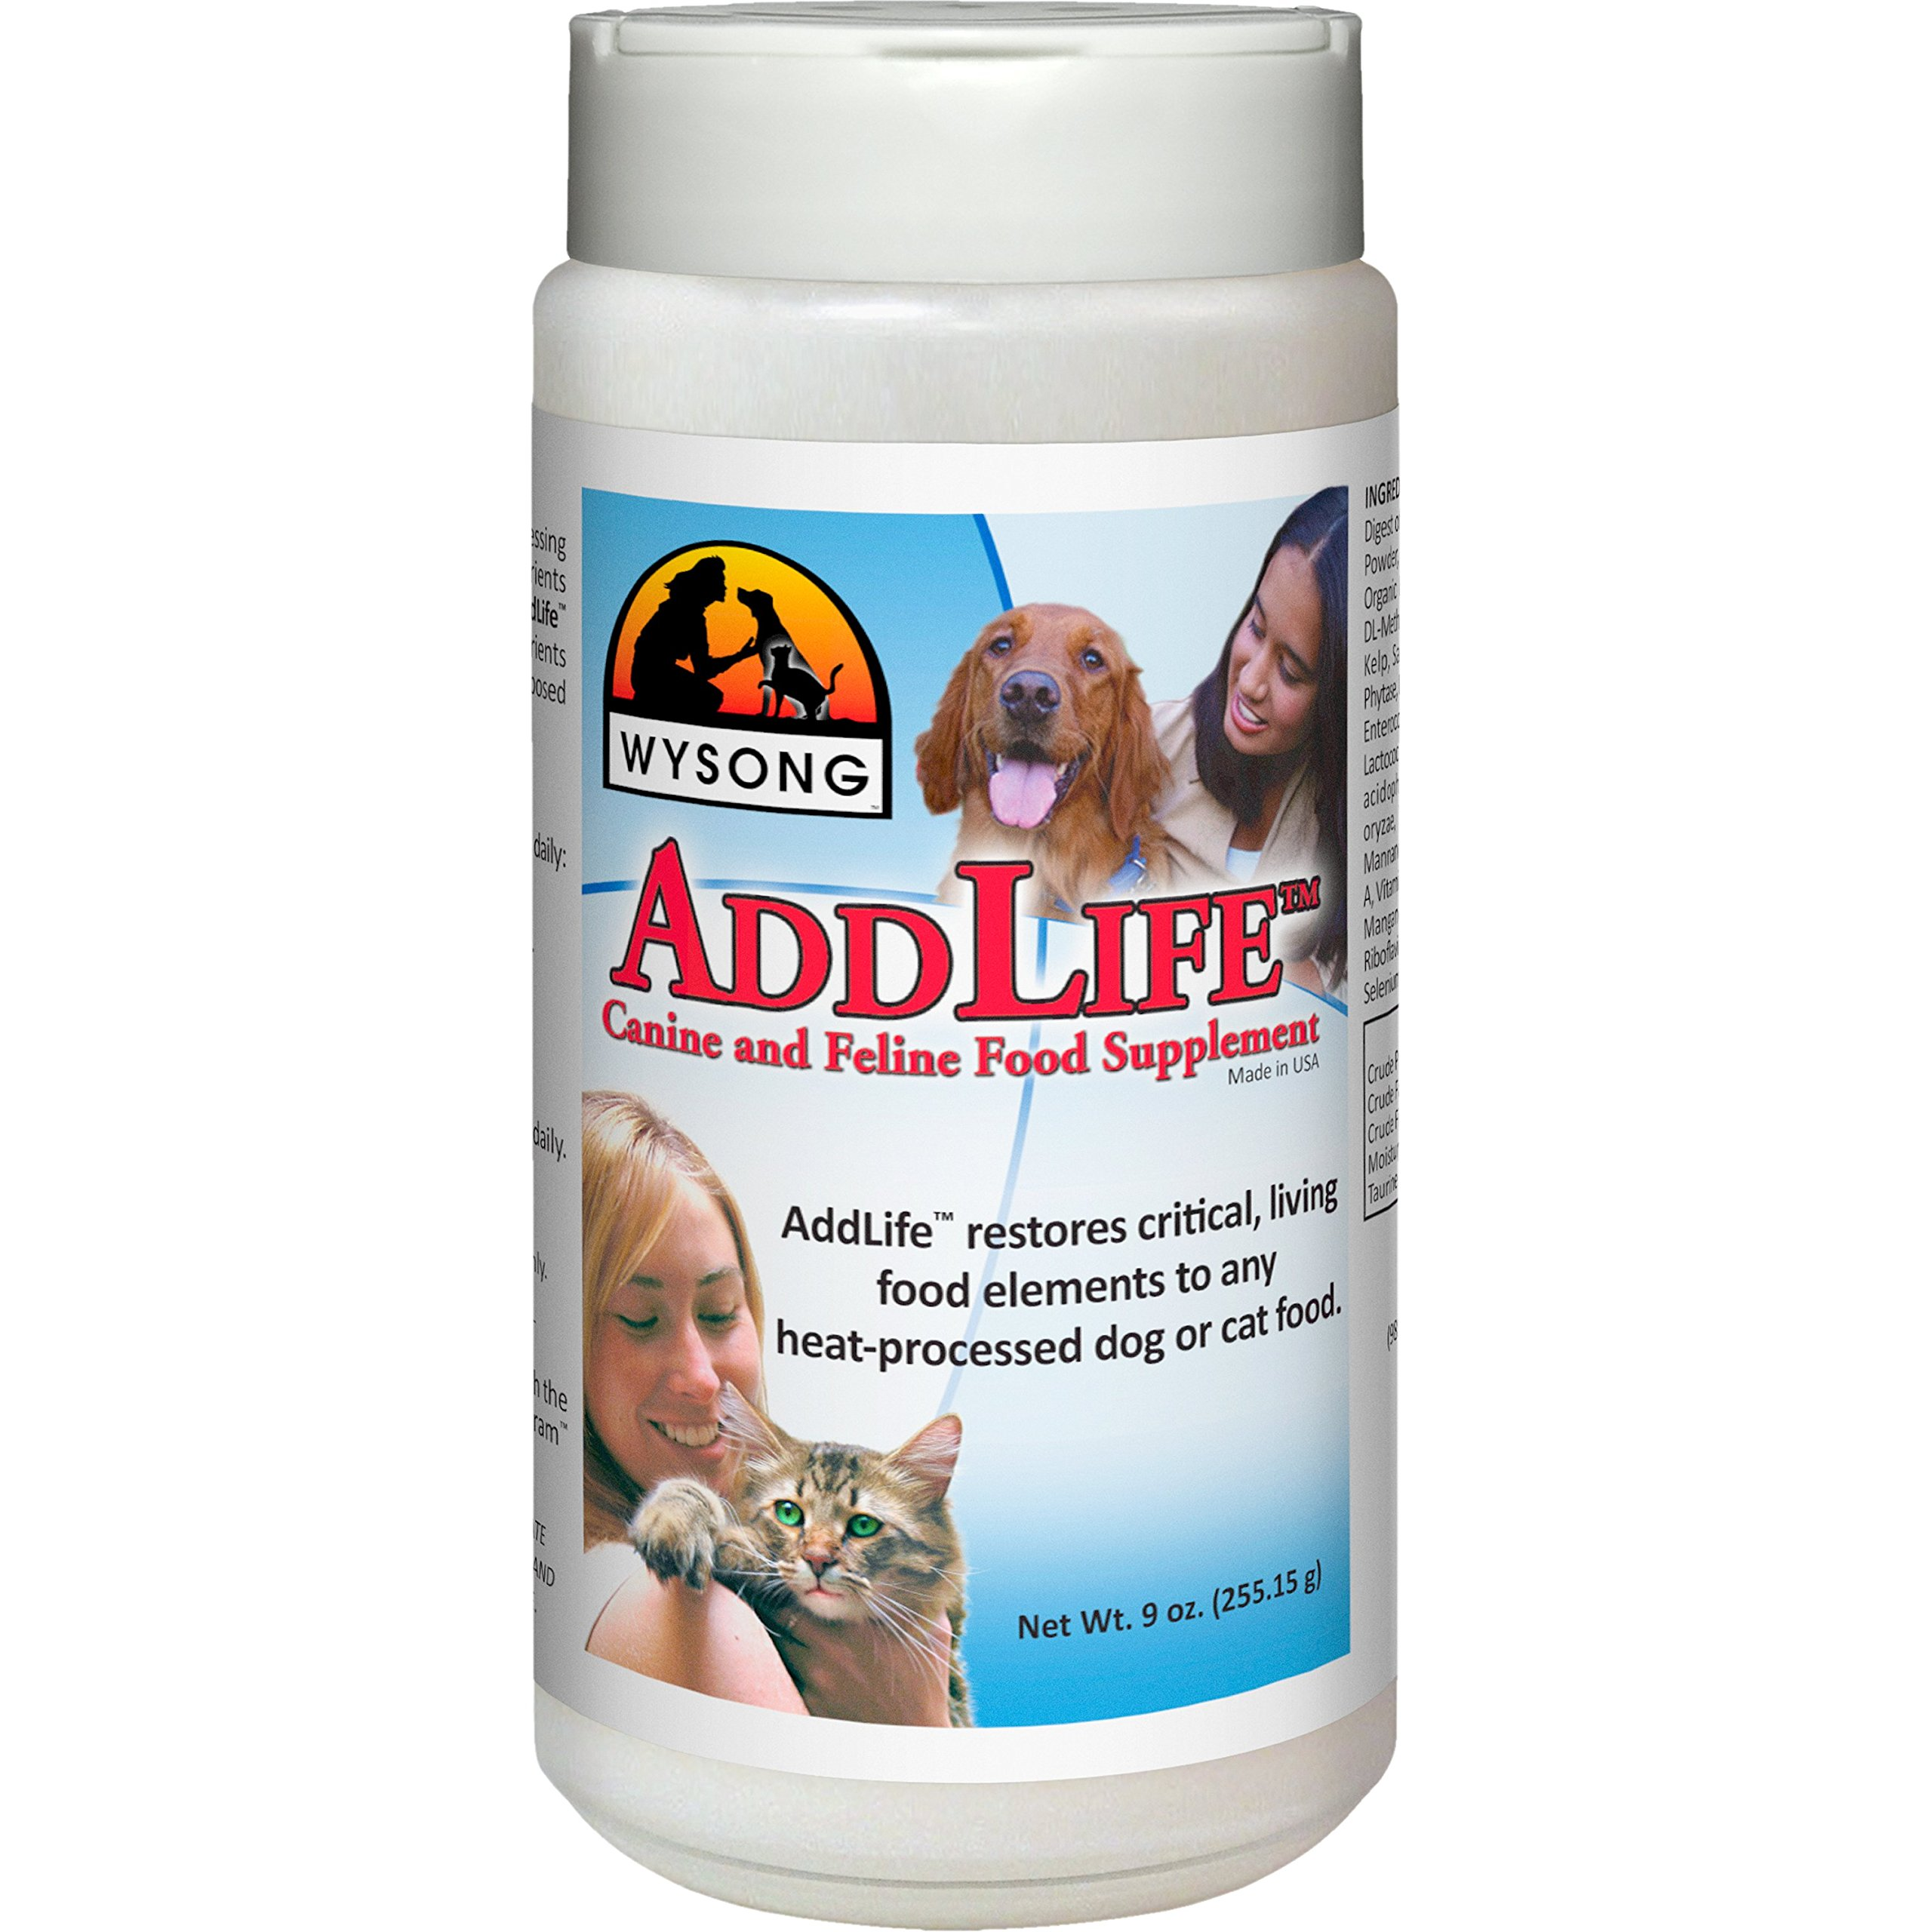 Wysong AddLife Canine/Feline Food Supplement For Dog/Cat - 9 Ounce Bottle